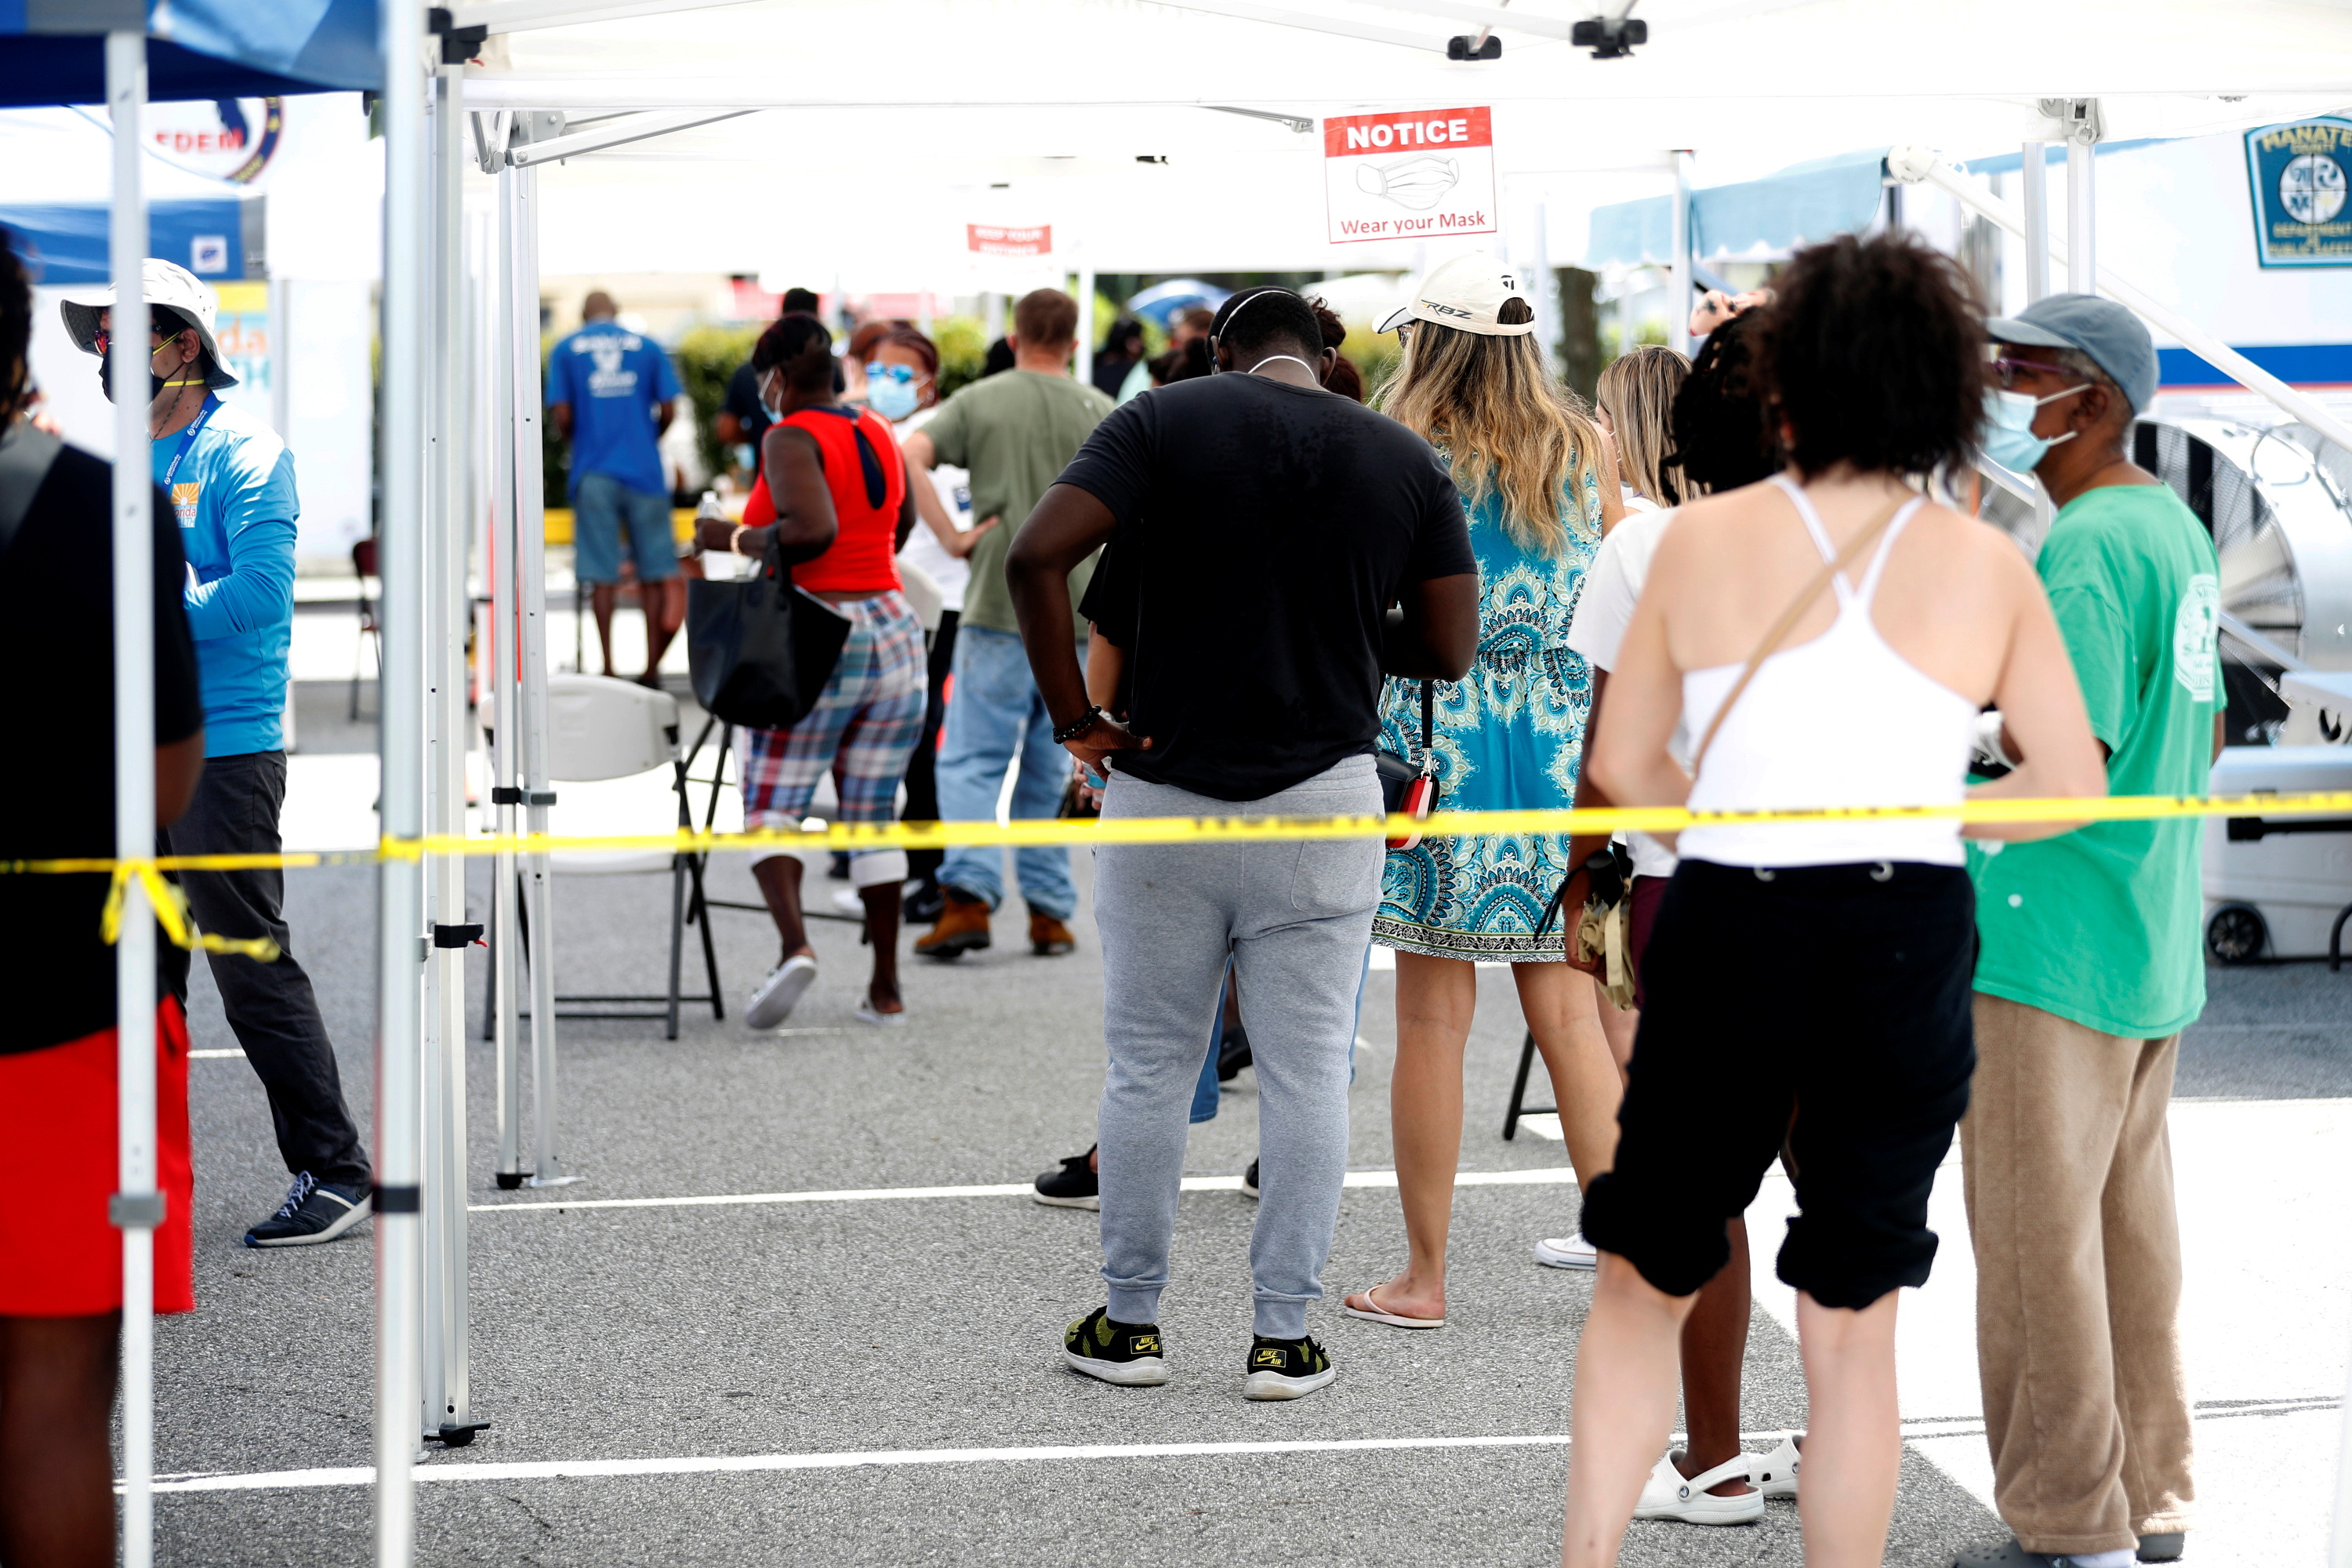 Patients wait in line to get a swab test at a COVID-19 mobile testing site hosted by the Manatee County Florida Department of Health in Palmetto, Florida, U.S., August 2, 2021.  REUTERS/Octavio Jones